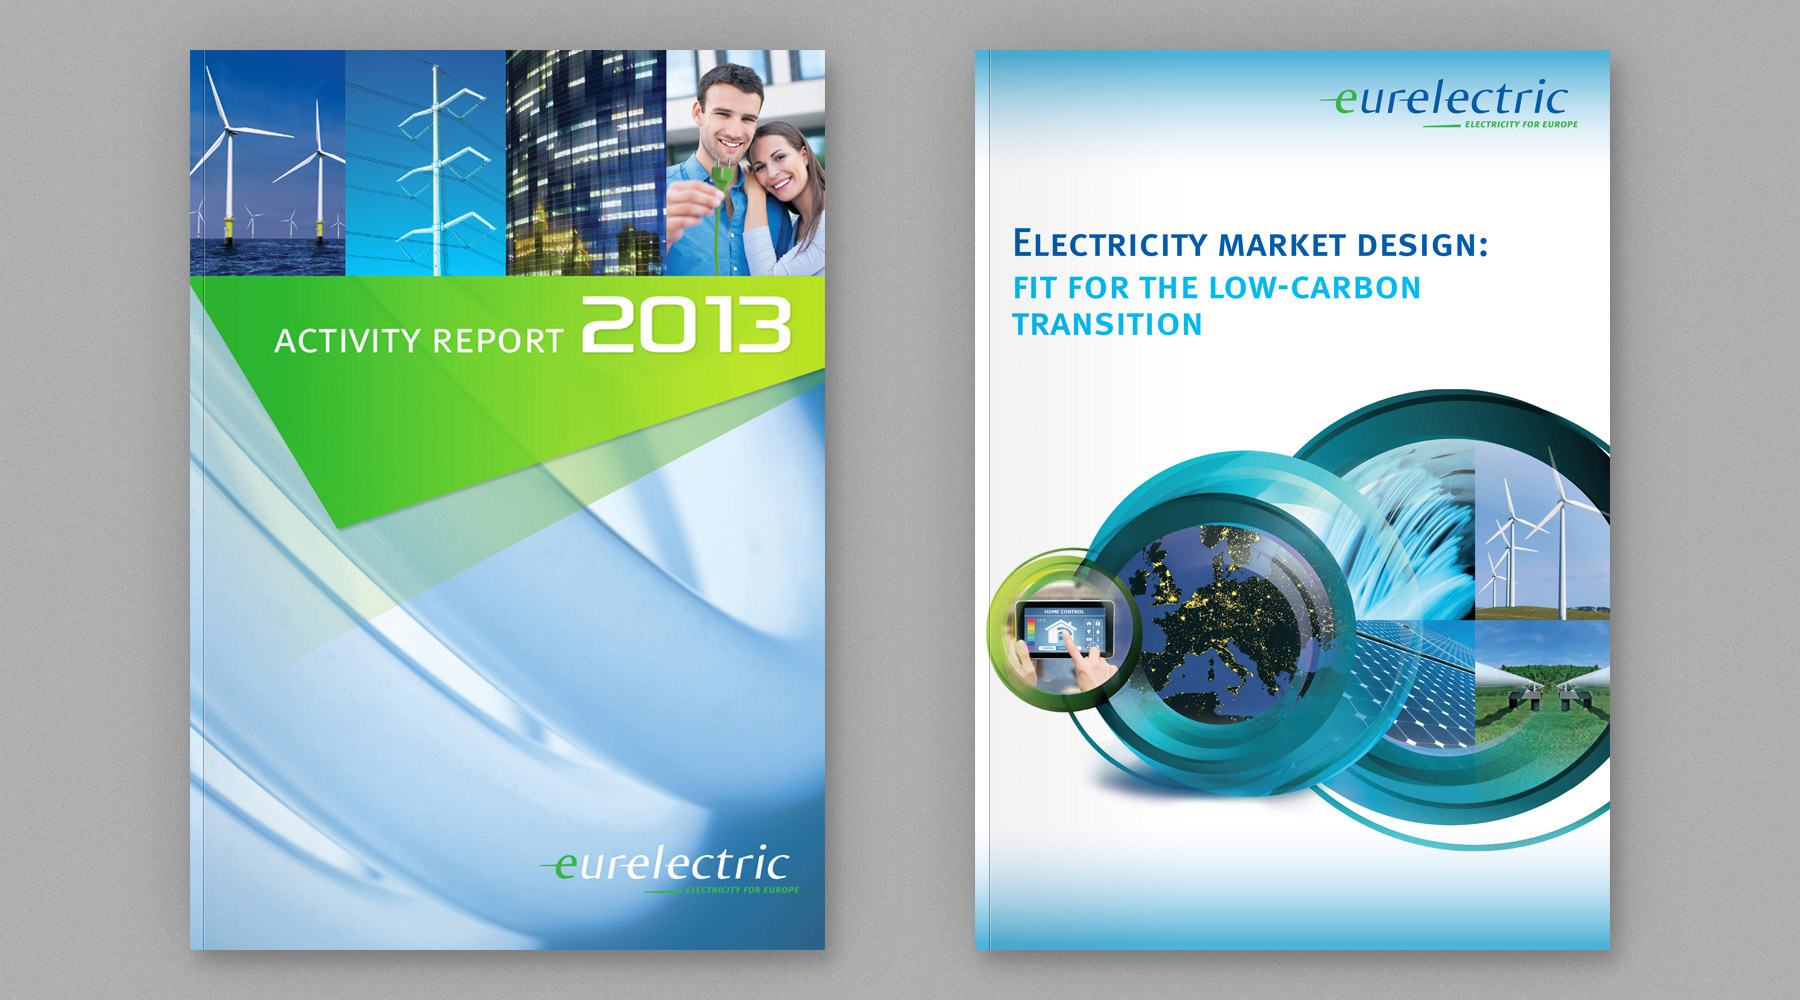 Case Study: Eurelectric - 03